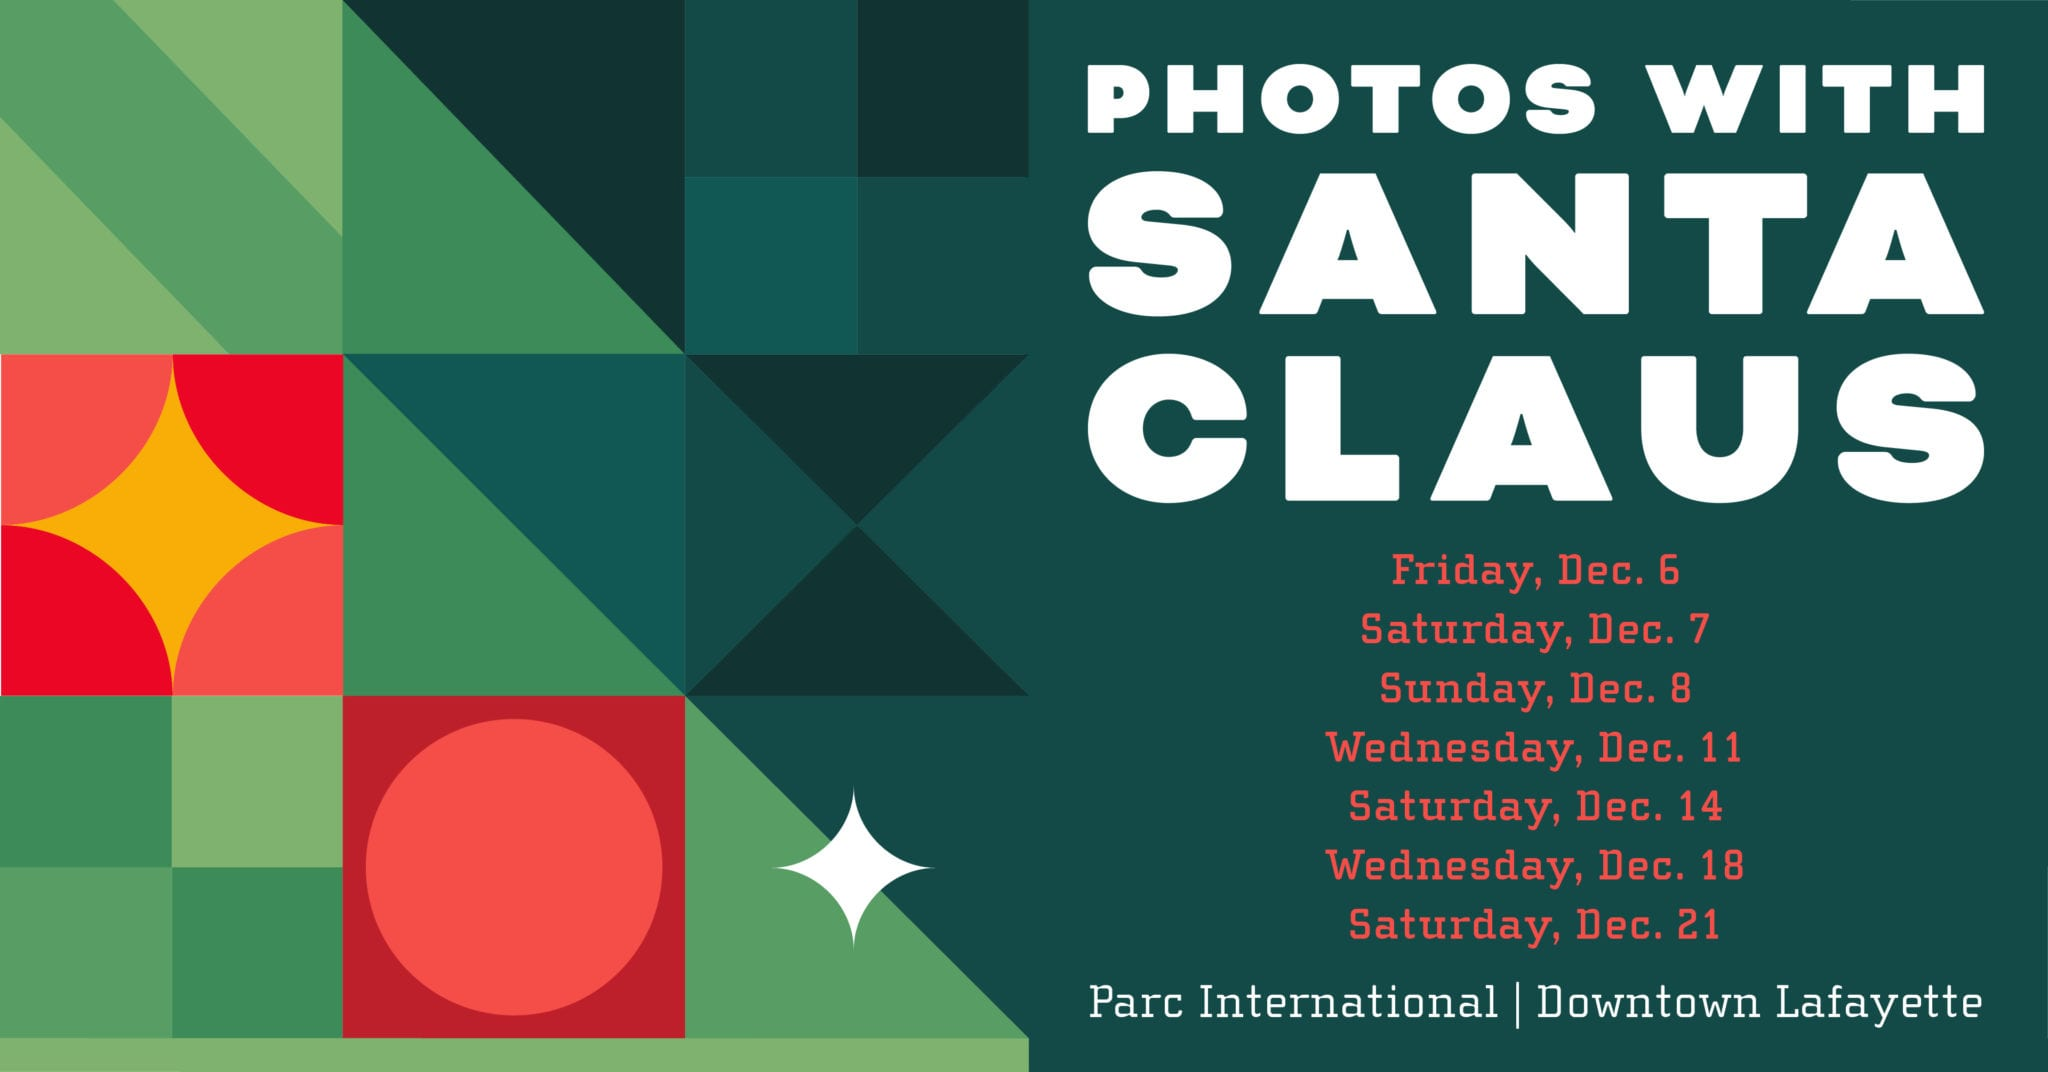 Photos with Santa event flyer with dates listed